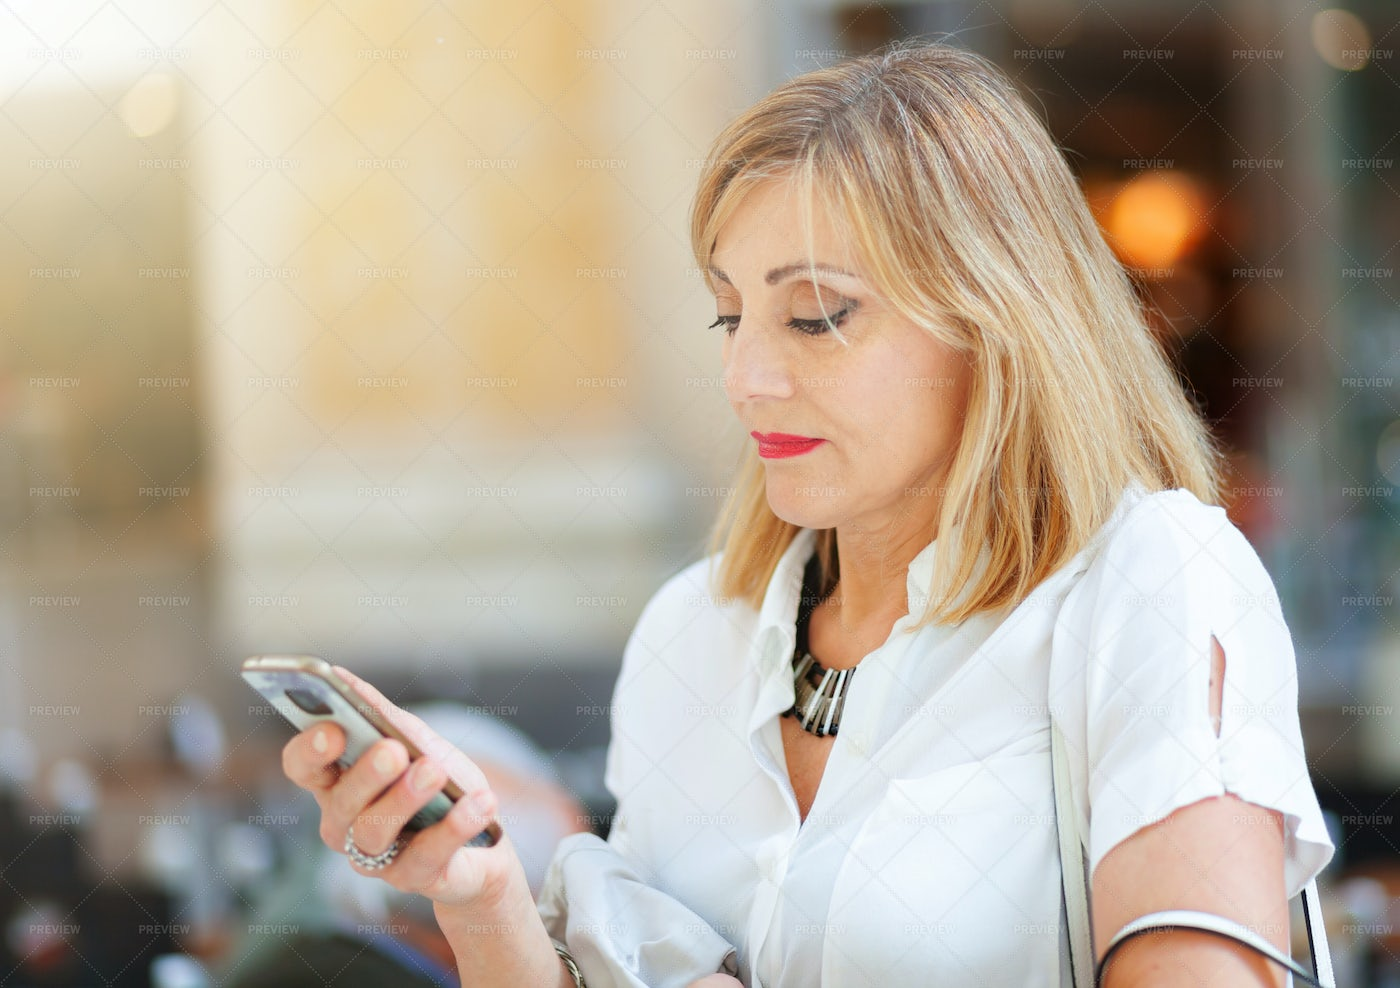 Checking Her Smartphone: Stock Photos